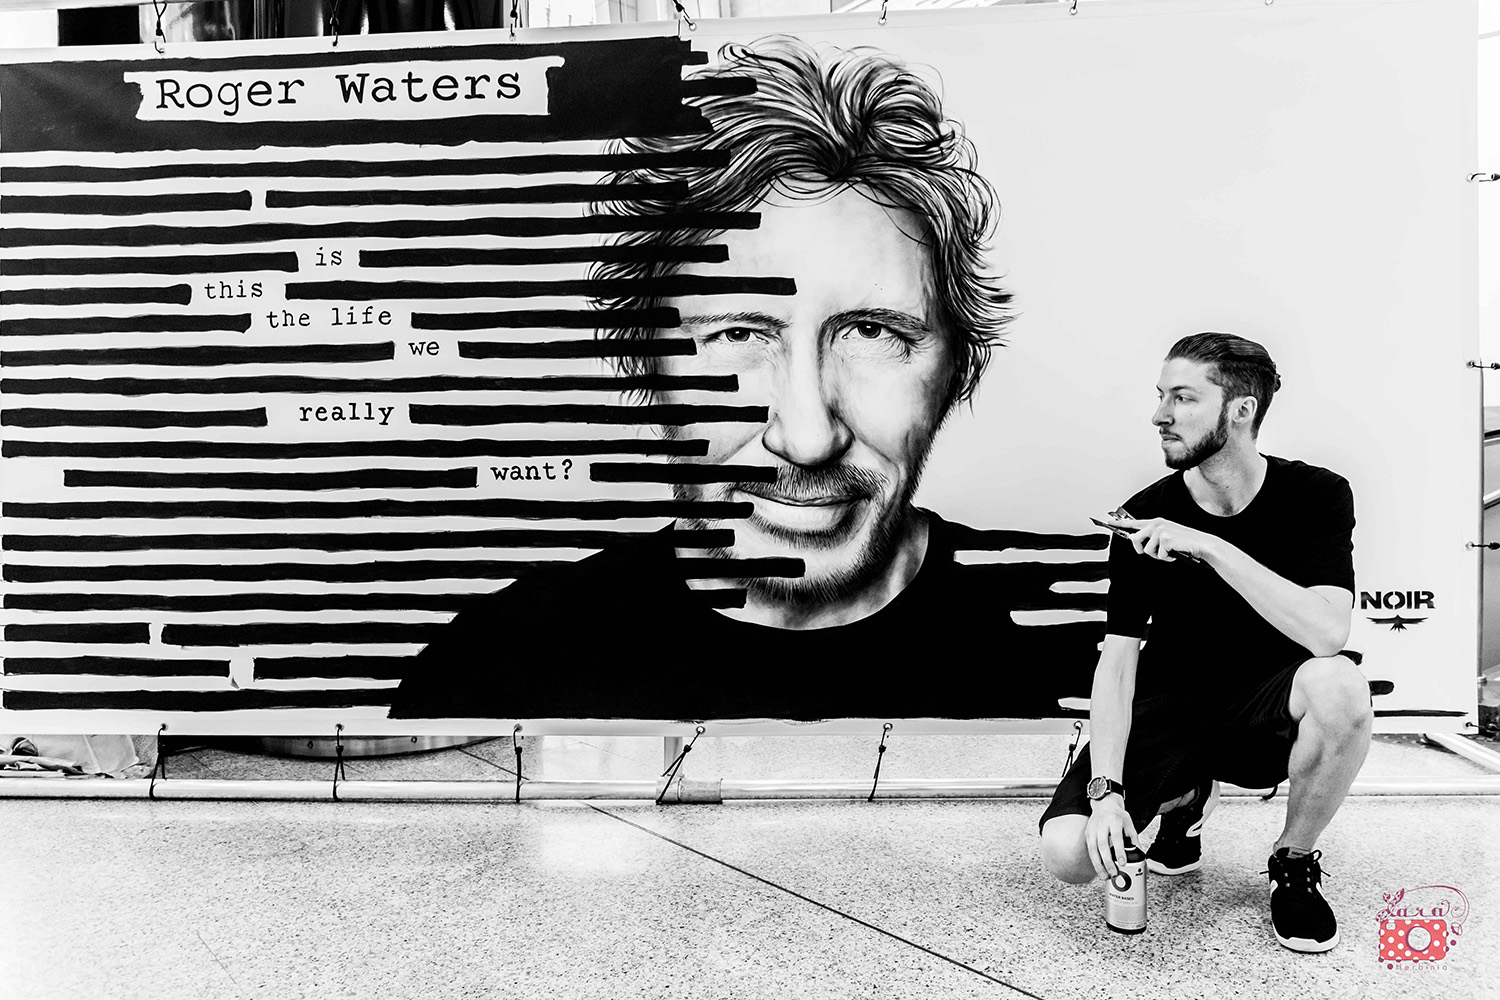 NOIR artist Live Painting - Sony Music - Roger Waters